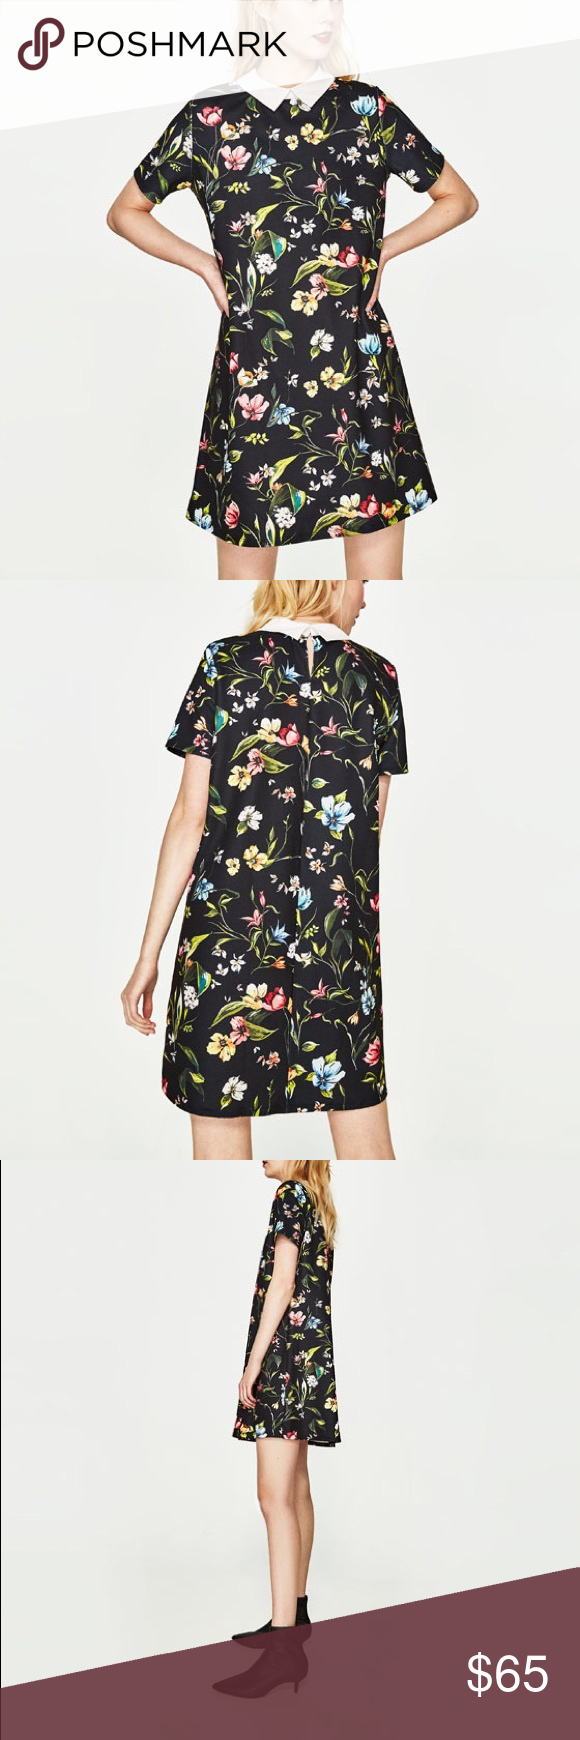 Zara Floral Print Dress With Shirt Collar Nwt My Posh Closet